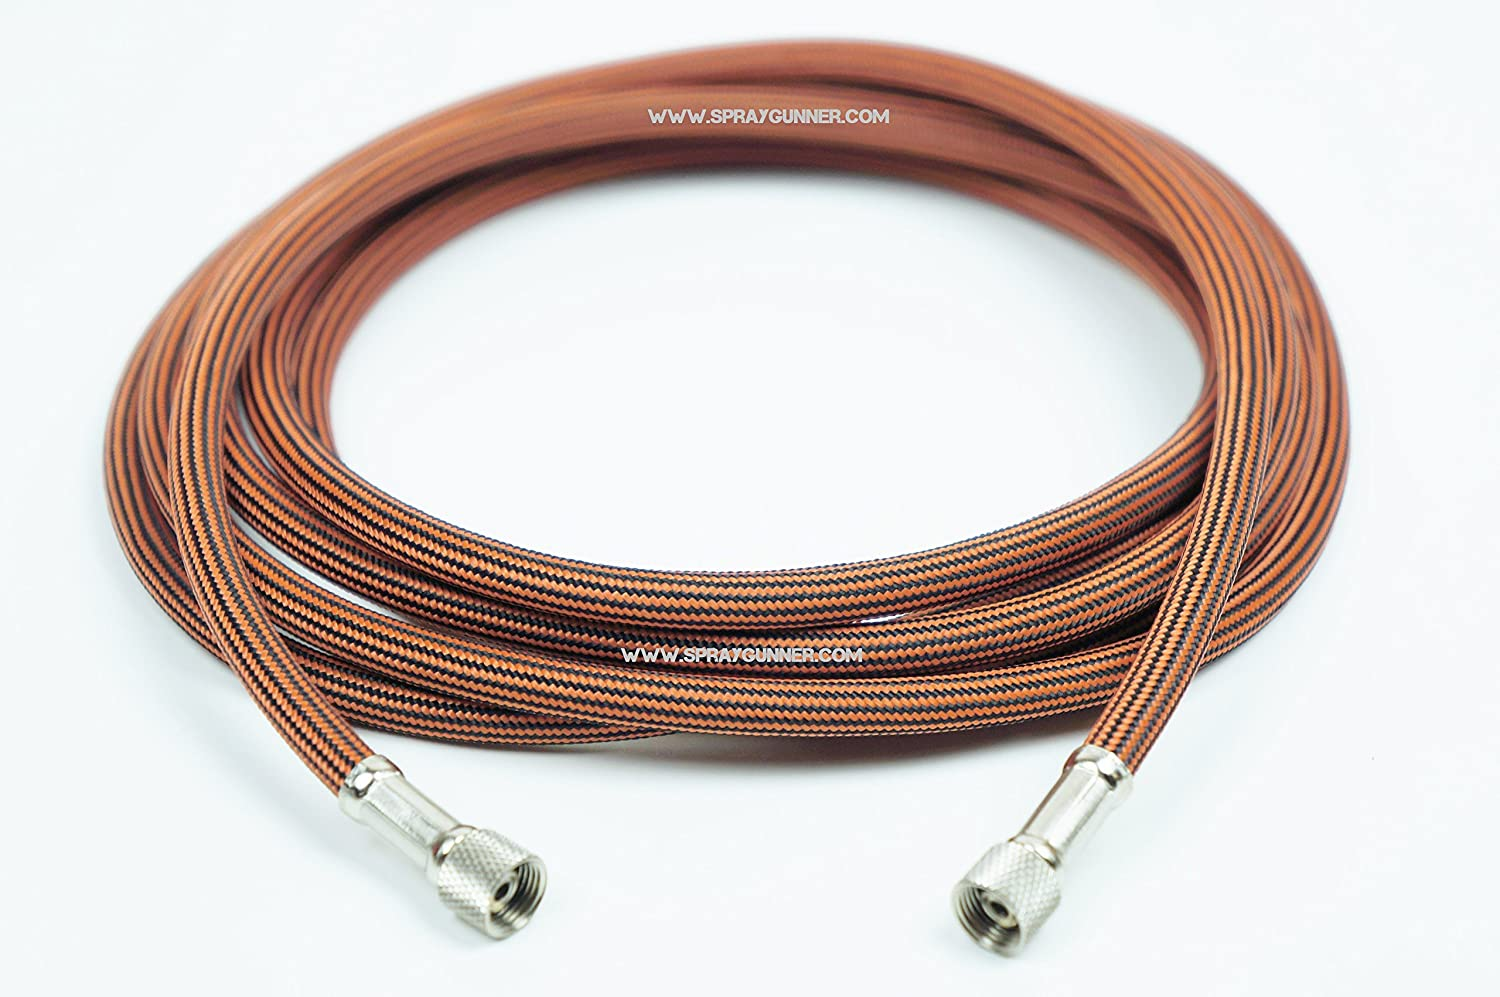 Sparmax braided air hose 1/8-1/8 10ft. For airbrush to compressor connection. by SprayGunner